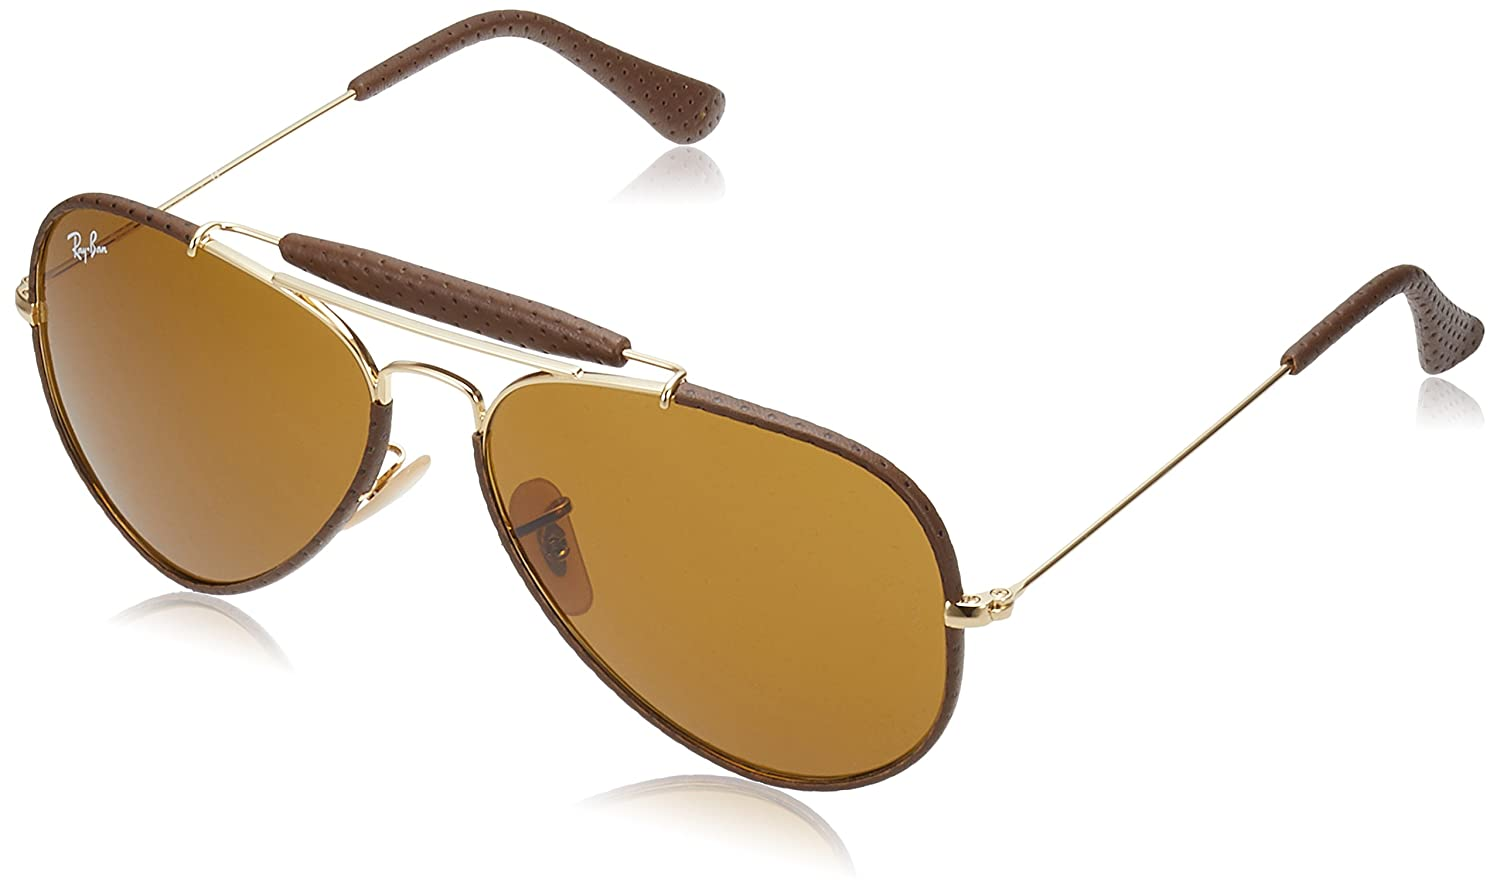 5ce3d7d763a1 Ray-Ban UV Protected Aviator Men's Sunglasses - (0RB3422Q904158|57|Brown  Color): Amazon.in: Clothing & Accessories